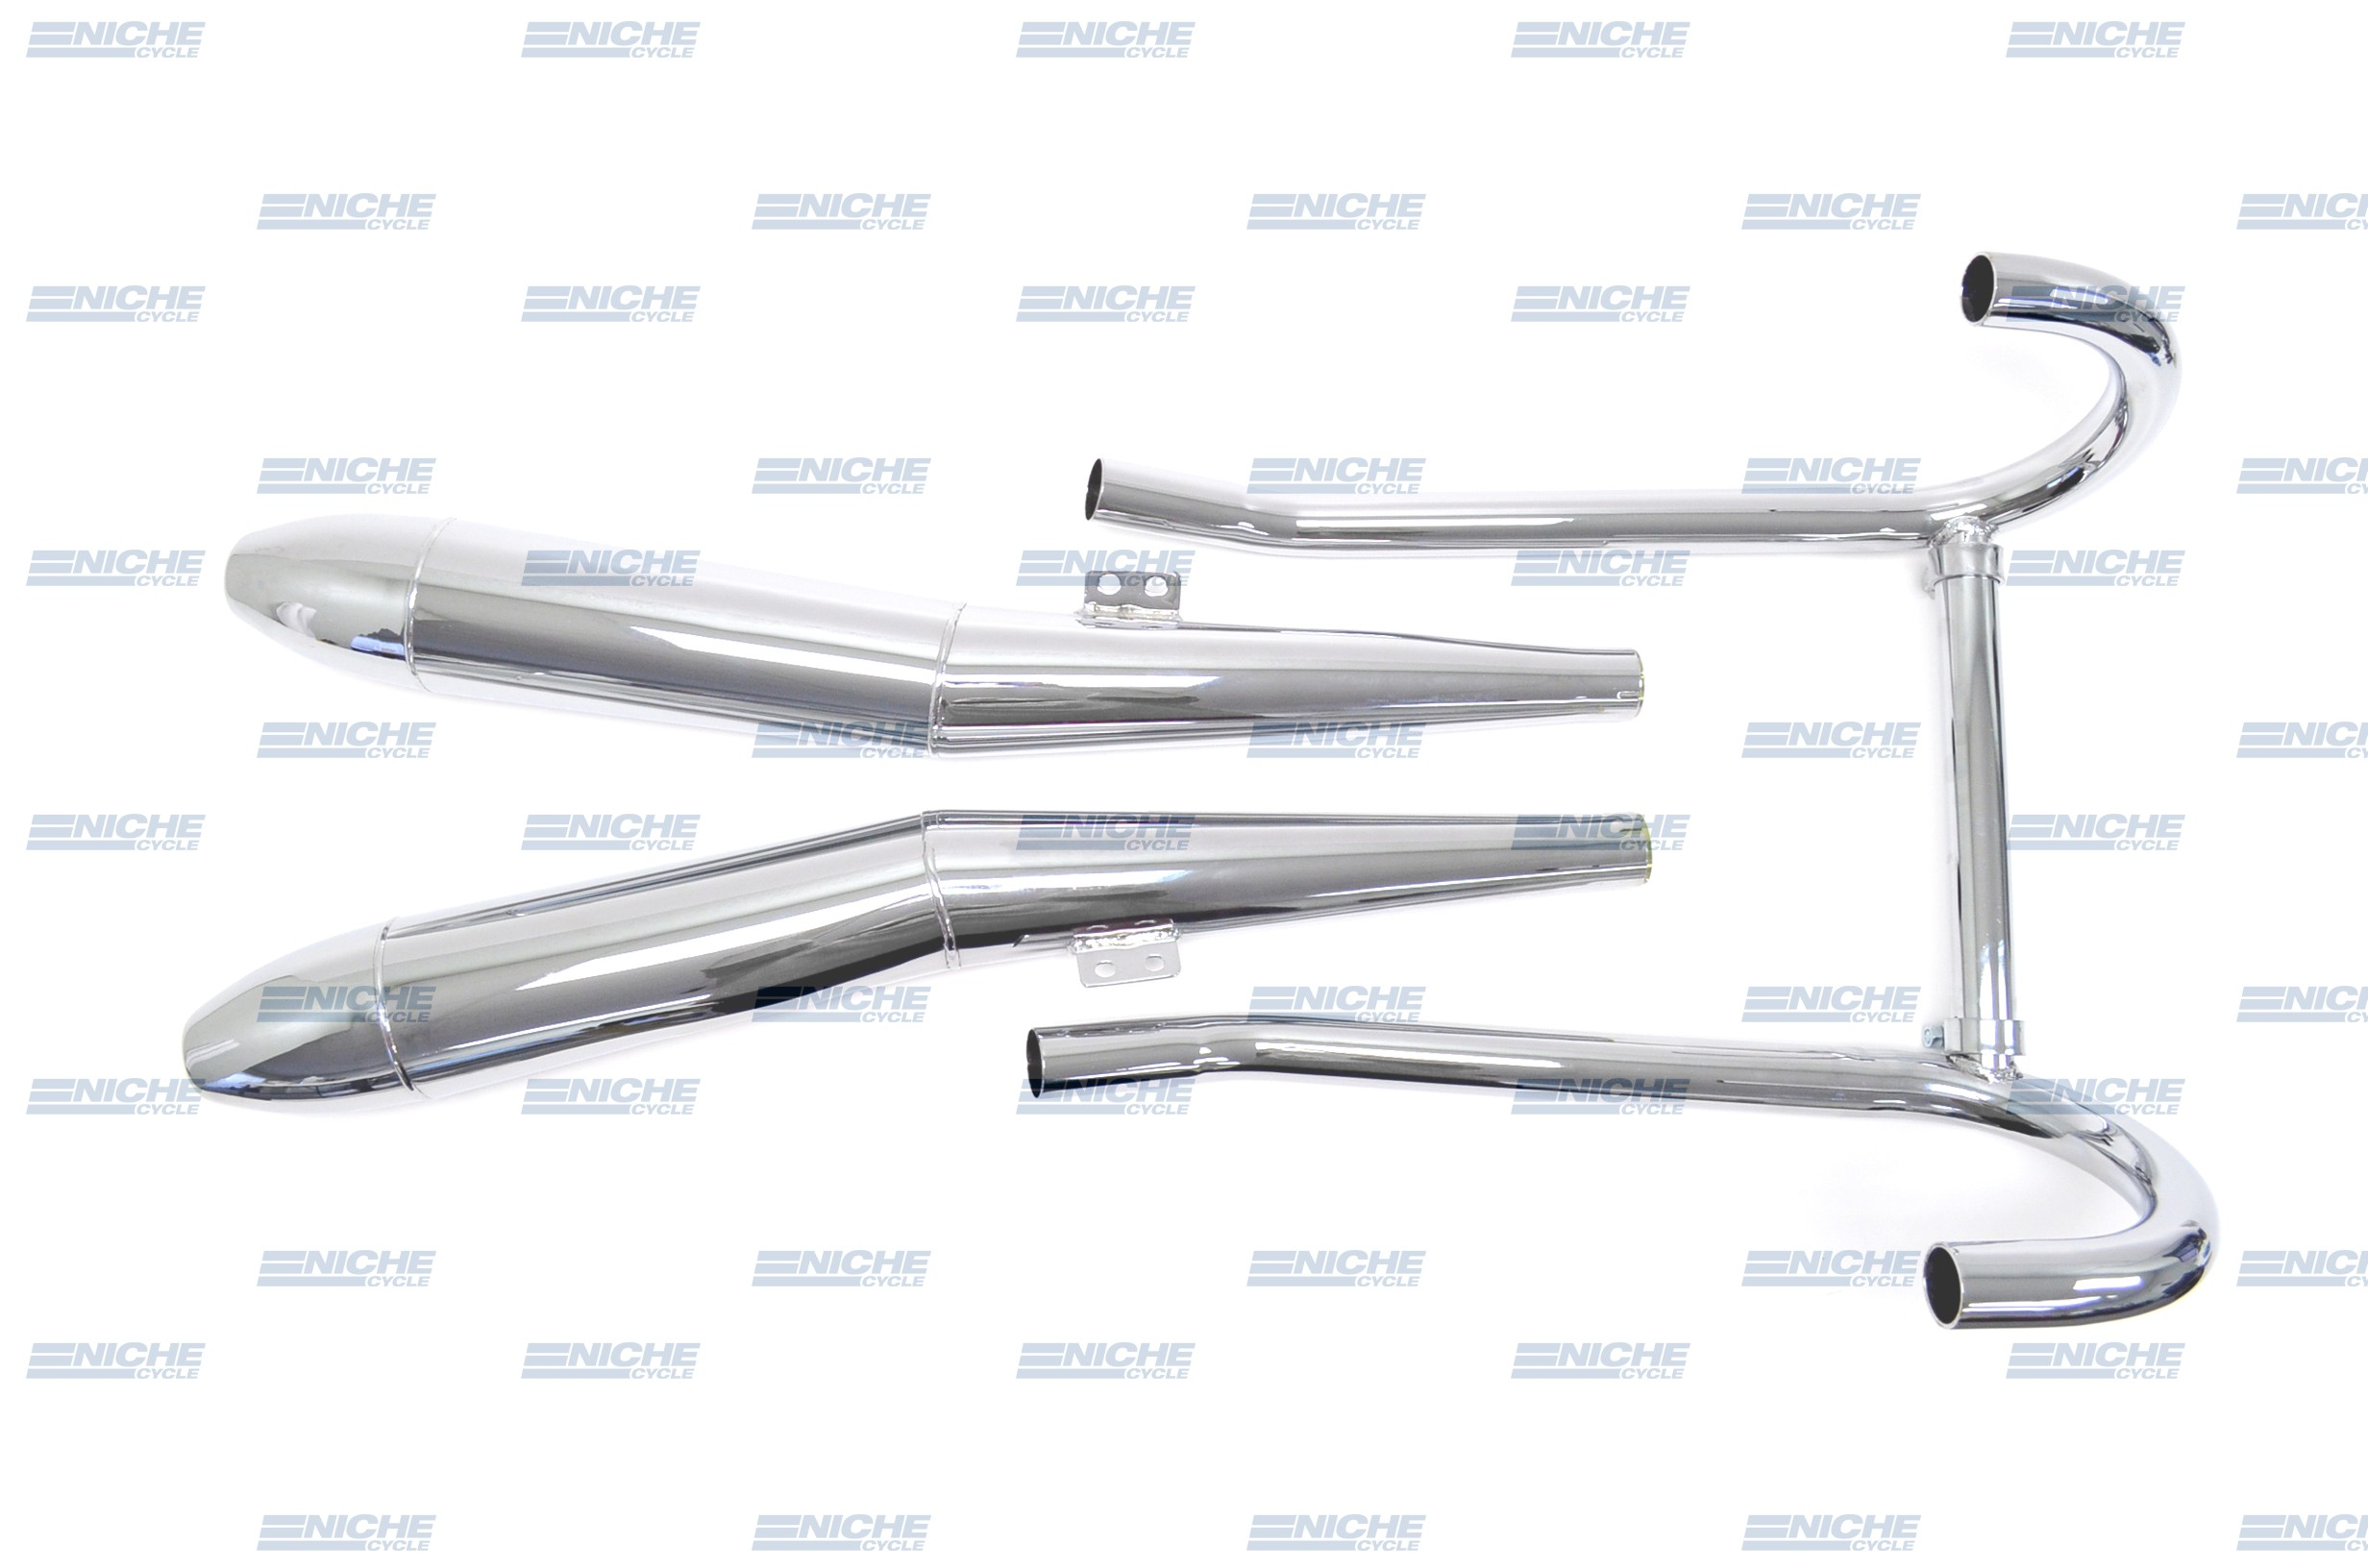 BMW R Model OE Replica Exhaust System 38mm /5 Models 69-72 NCS1003